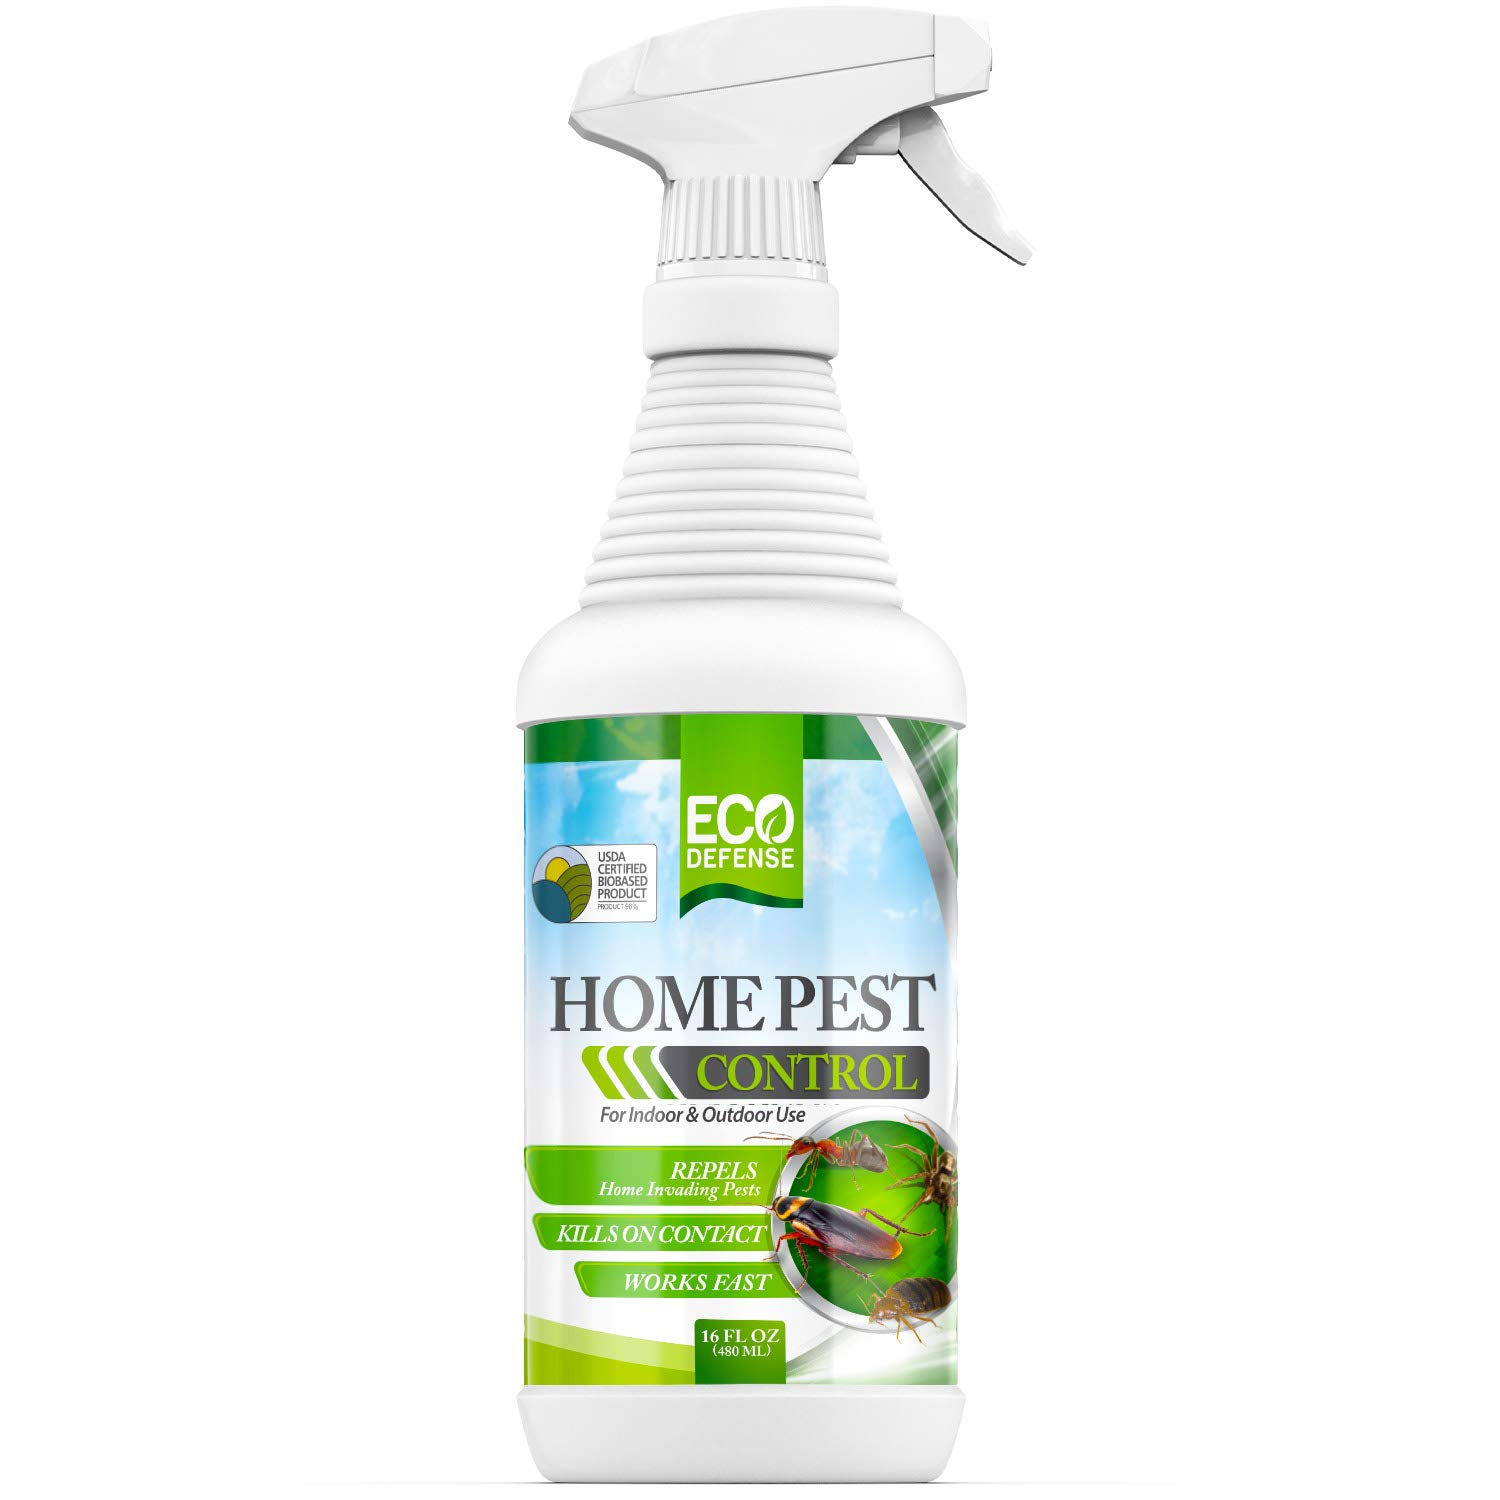 Eco Defense Home Pest Control Spray, USDA Biobased (16 oz)